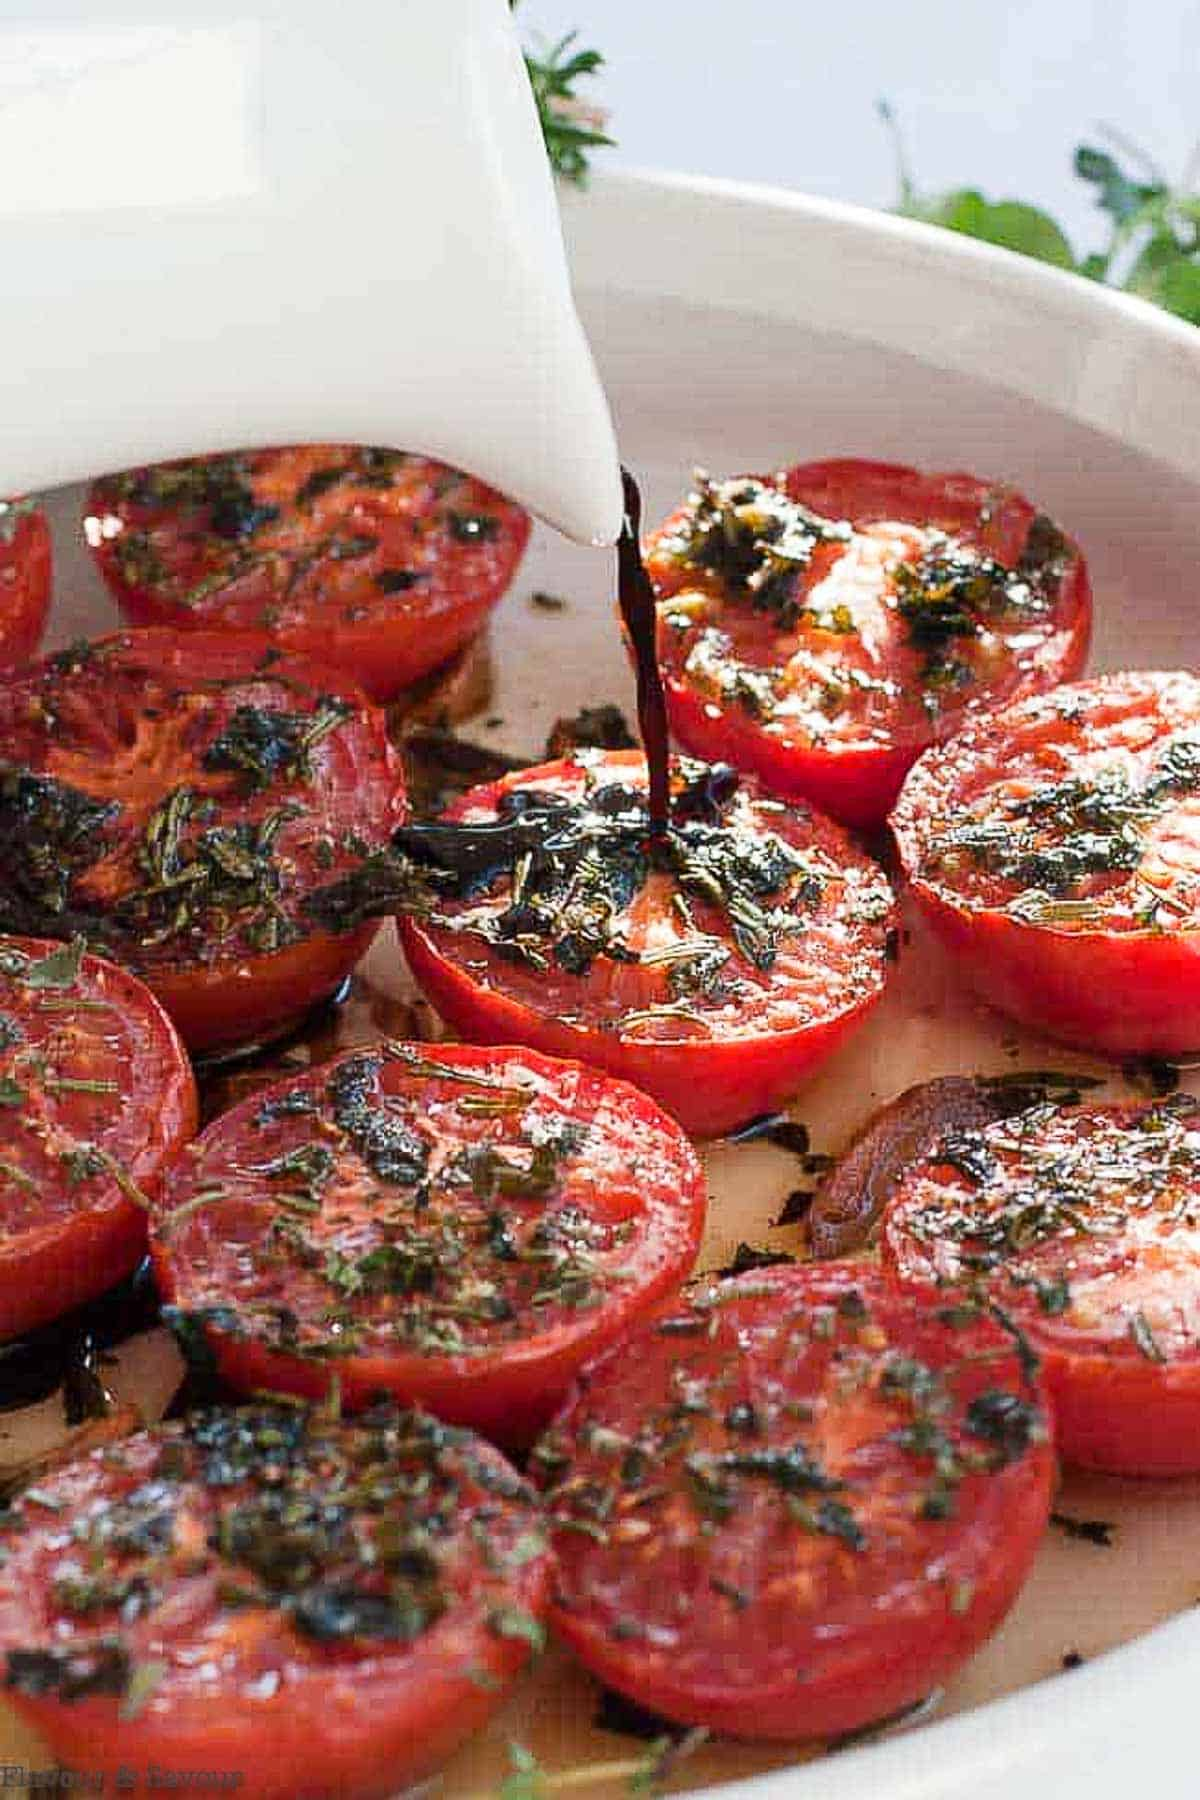 Drizzling balsamic vinegar on broiled Italian tomatoes with garlic and herbs